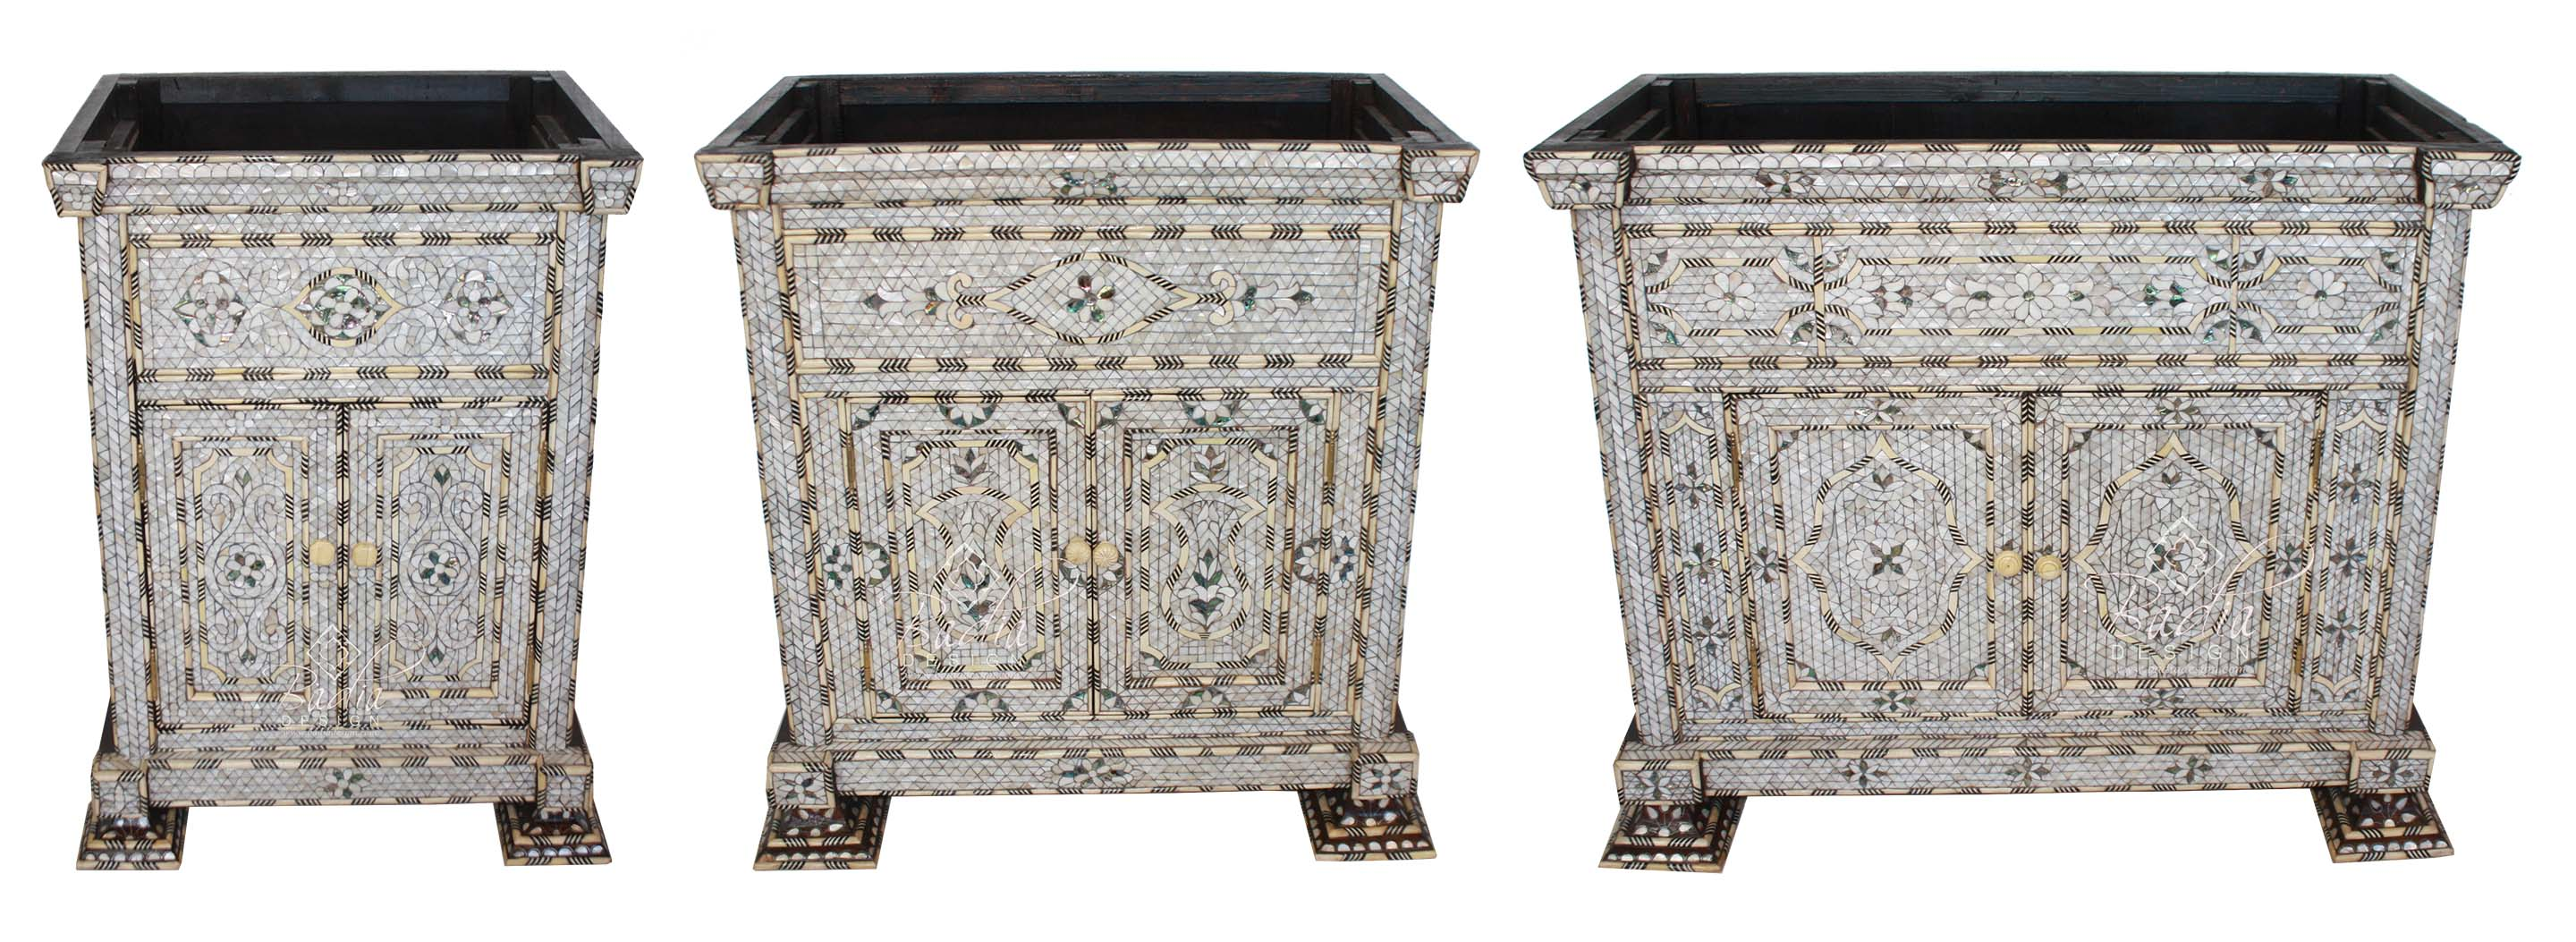 moroccan-mother-of-pearl-bathroom-vanity-cw-ca062.jpg